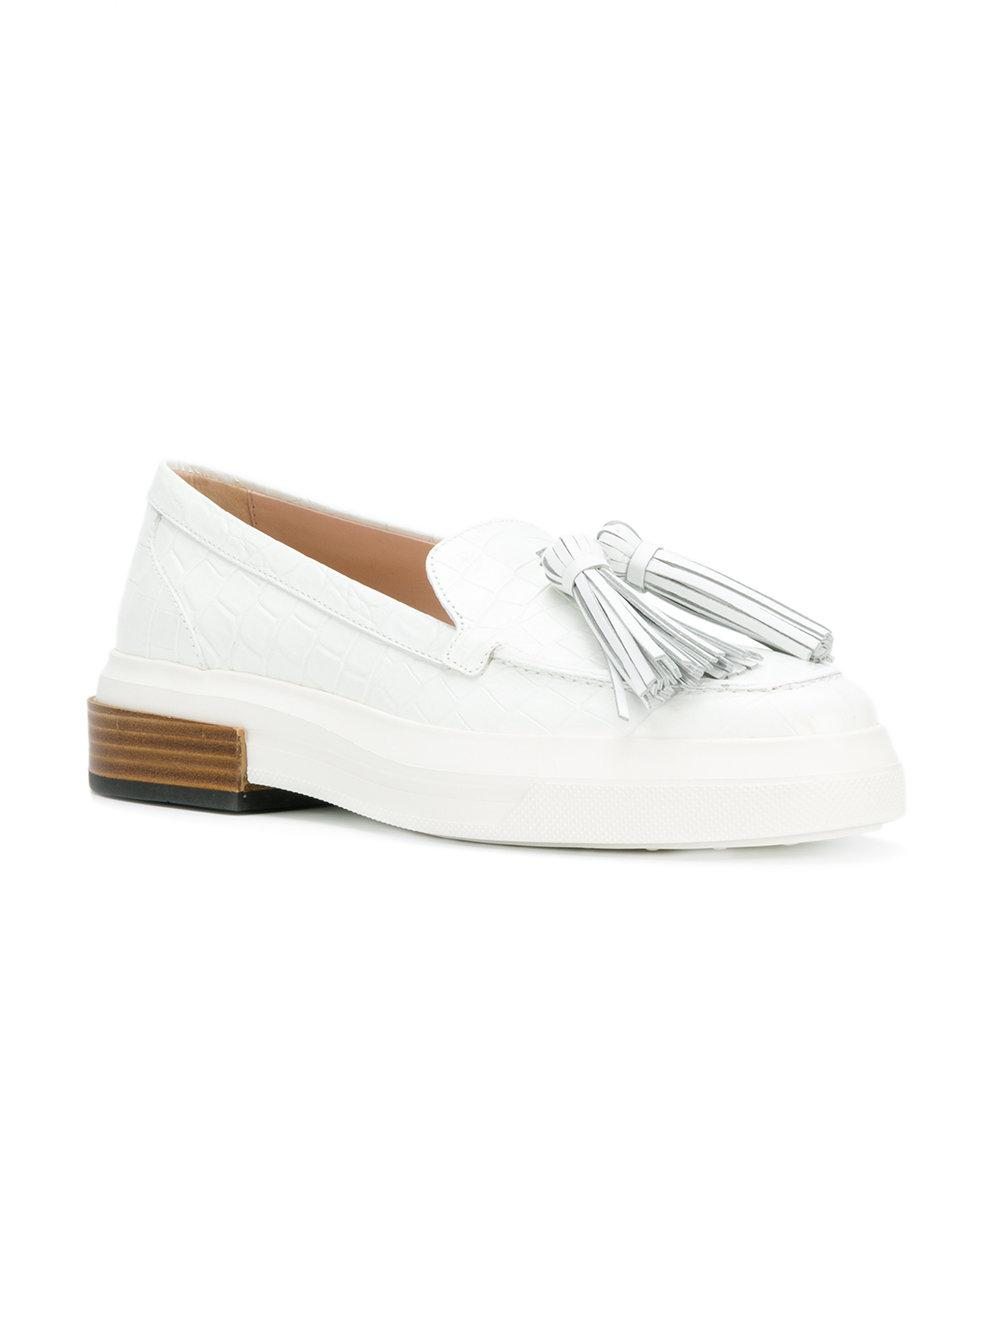 6dc7e01bfb6 Gallery. Previously sold at  Farfetch · Women s Platform Loafers Women s  Tods ...